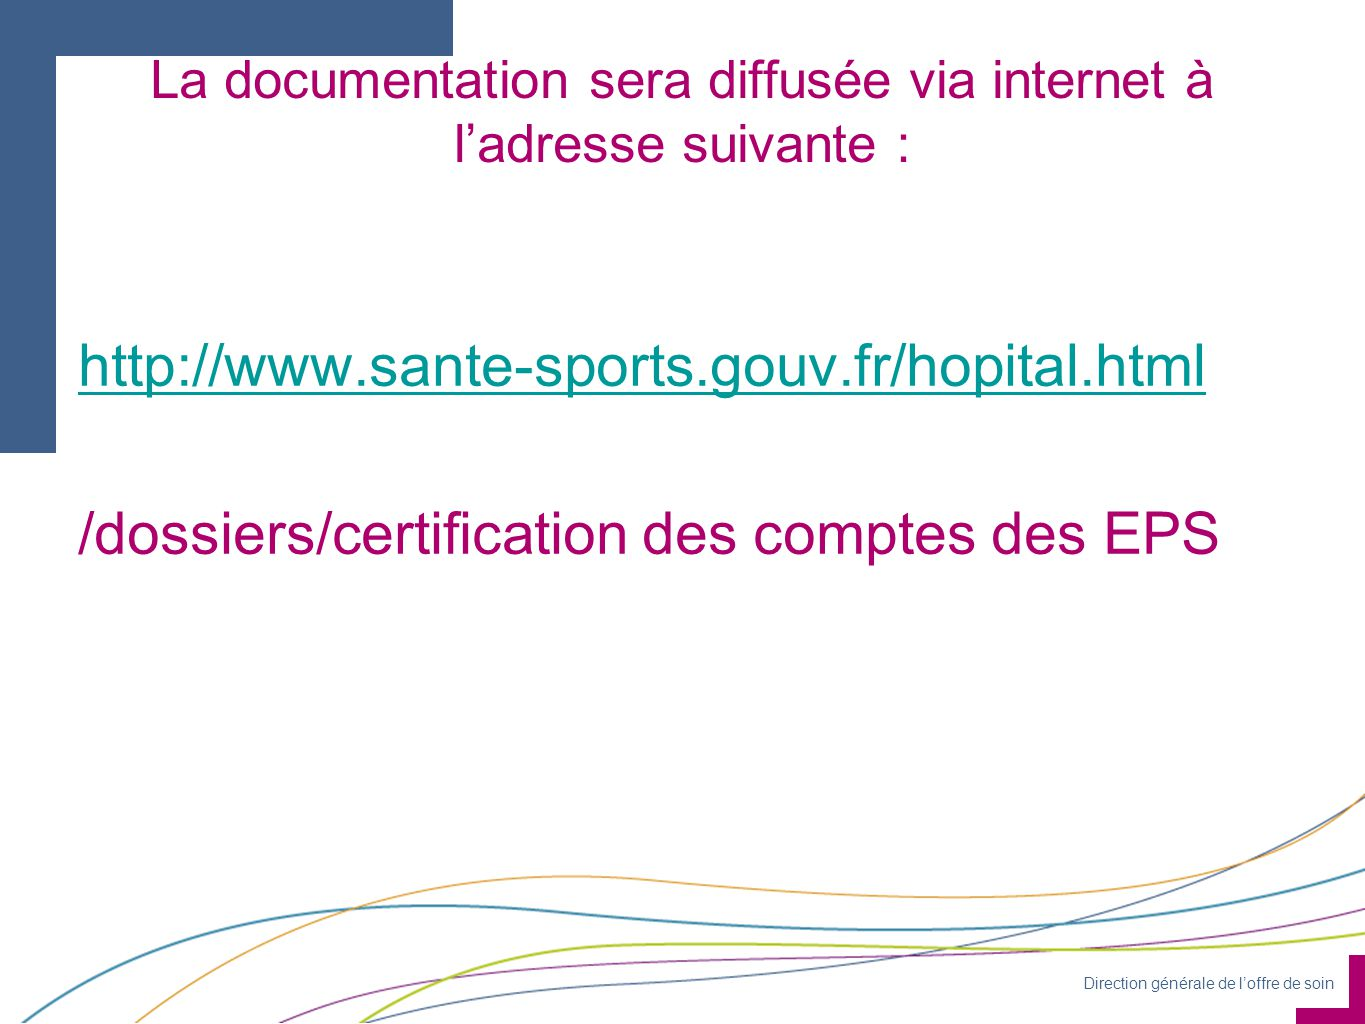 La documentation sera diffusée via internet à l'adresse suivante :